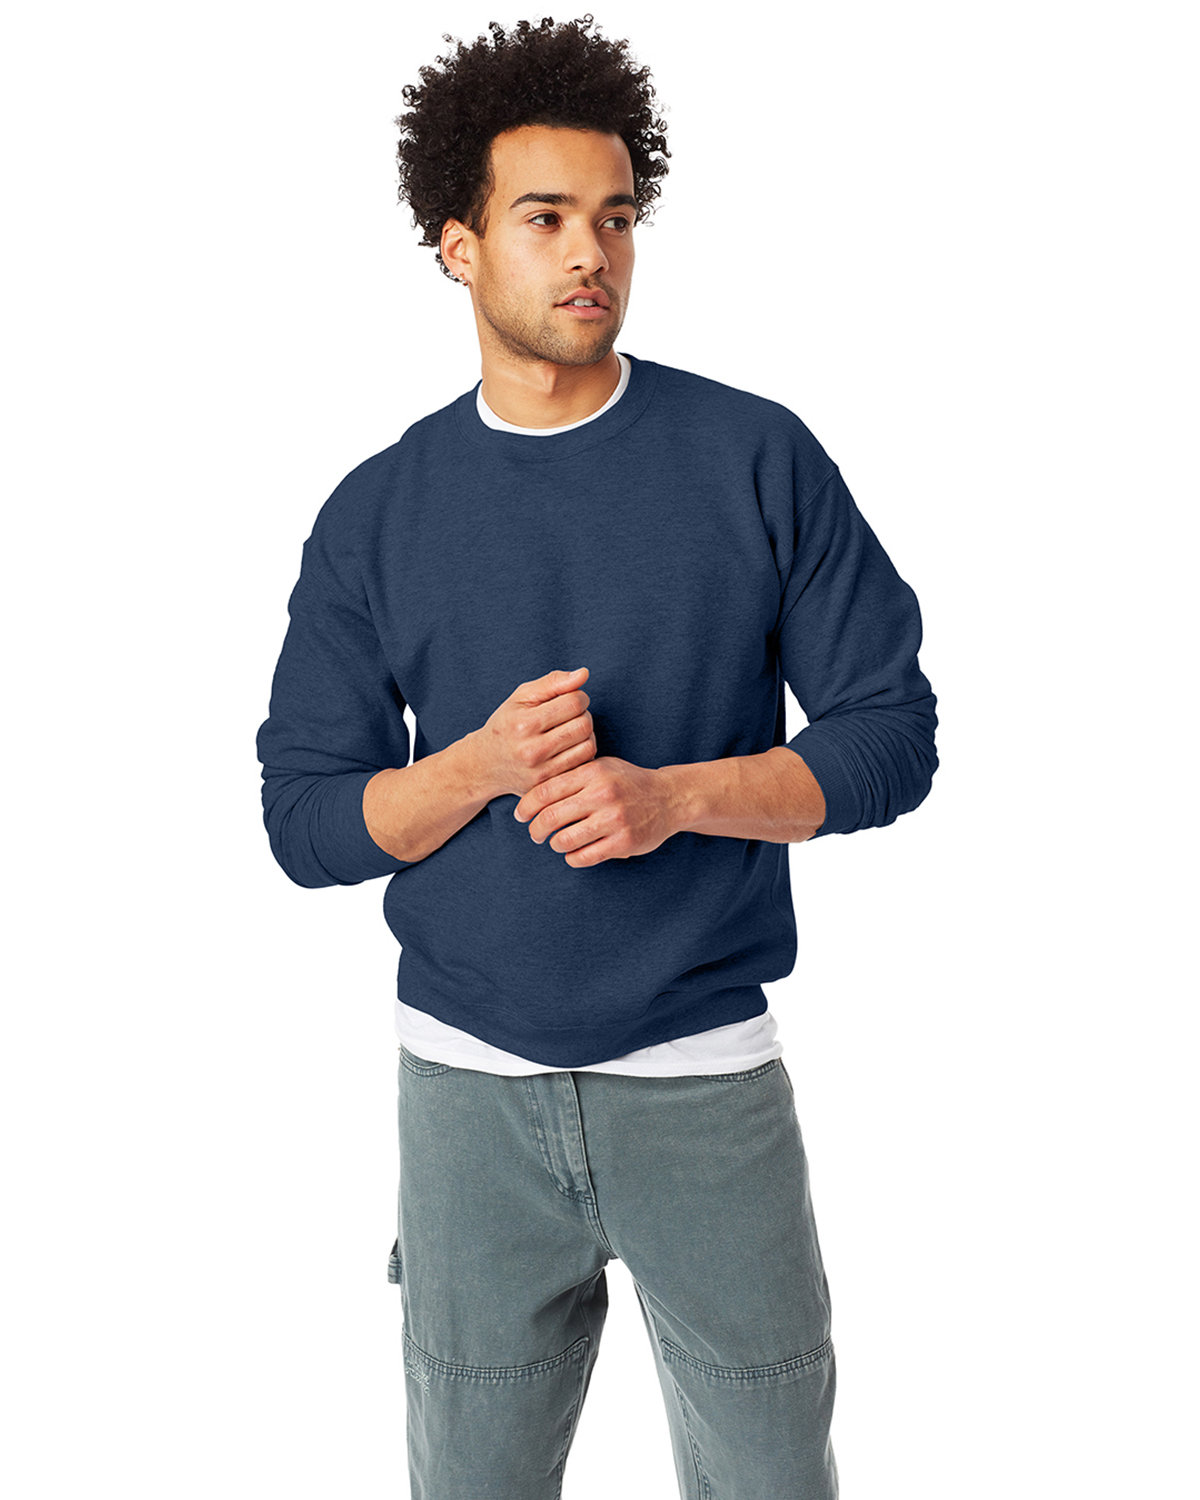 Hanes Unisex 7.8 oz., Ecosmart® 50/50 Crewneck Sweatshirt HEATHER NAVY